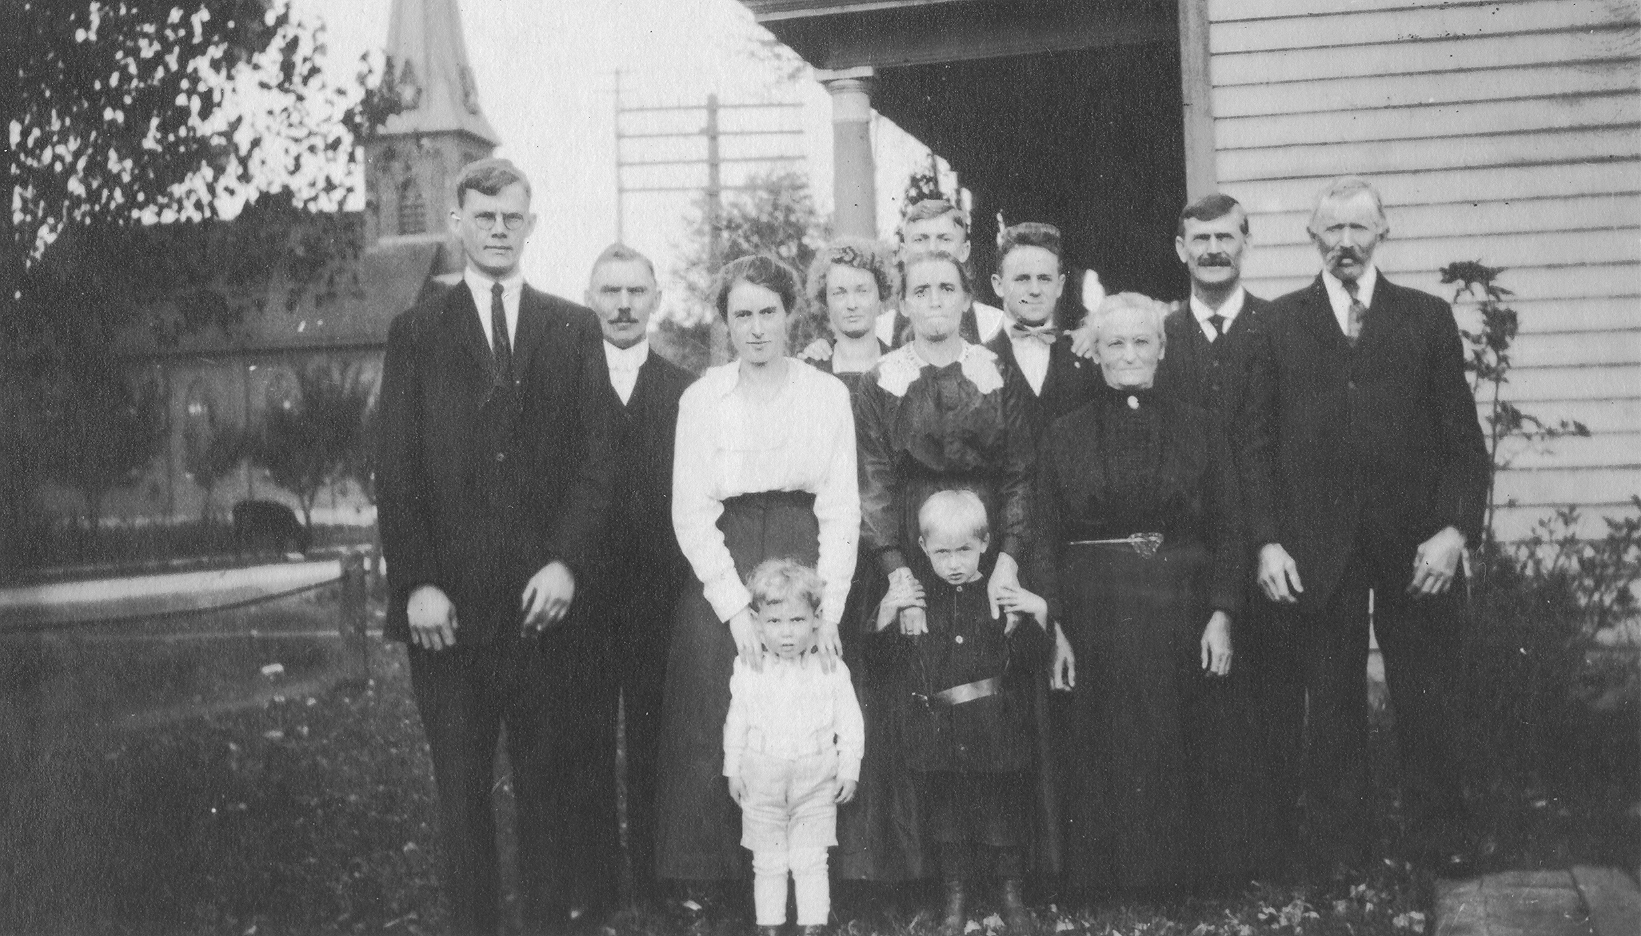 My dad's mother's family circa 1910 or so...